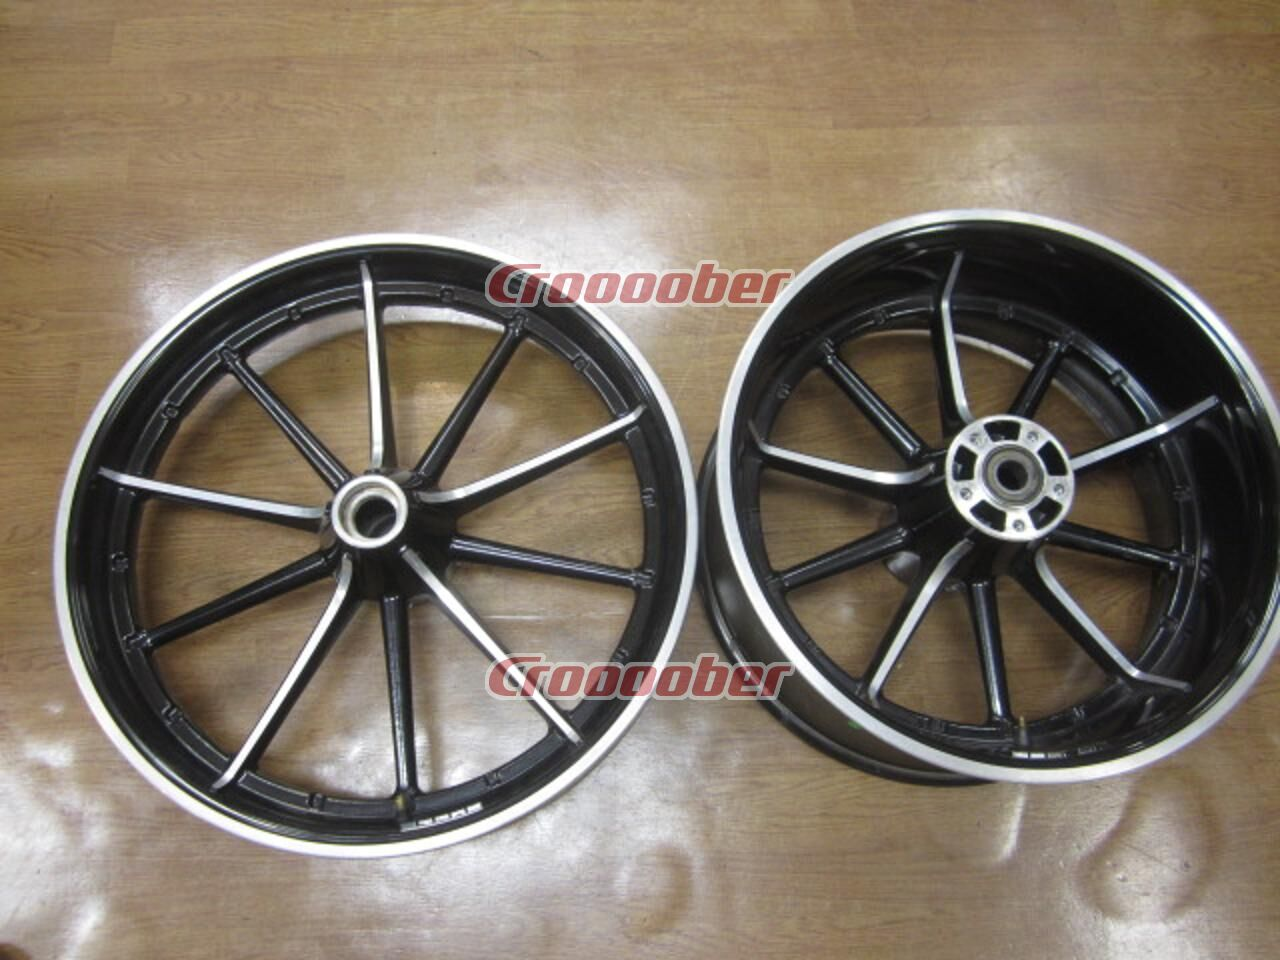 Used Harley Davidson Wheels >> Harley Davidson Softail Breakout Genuine Wheel Set Rims For Sale Croooober